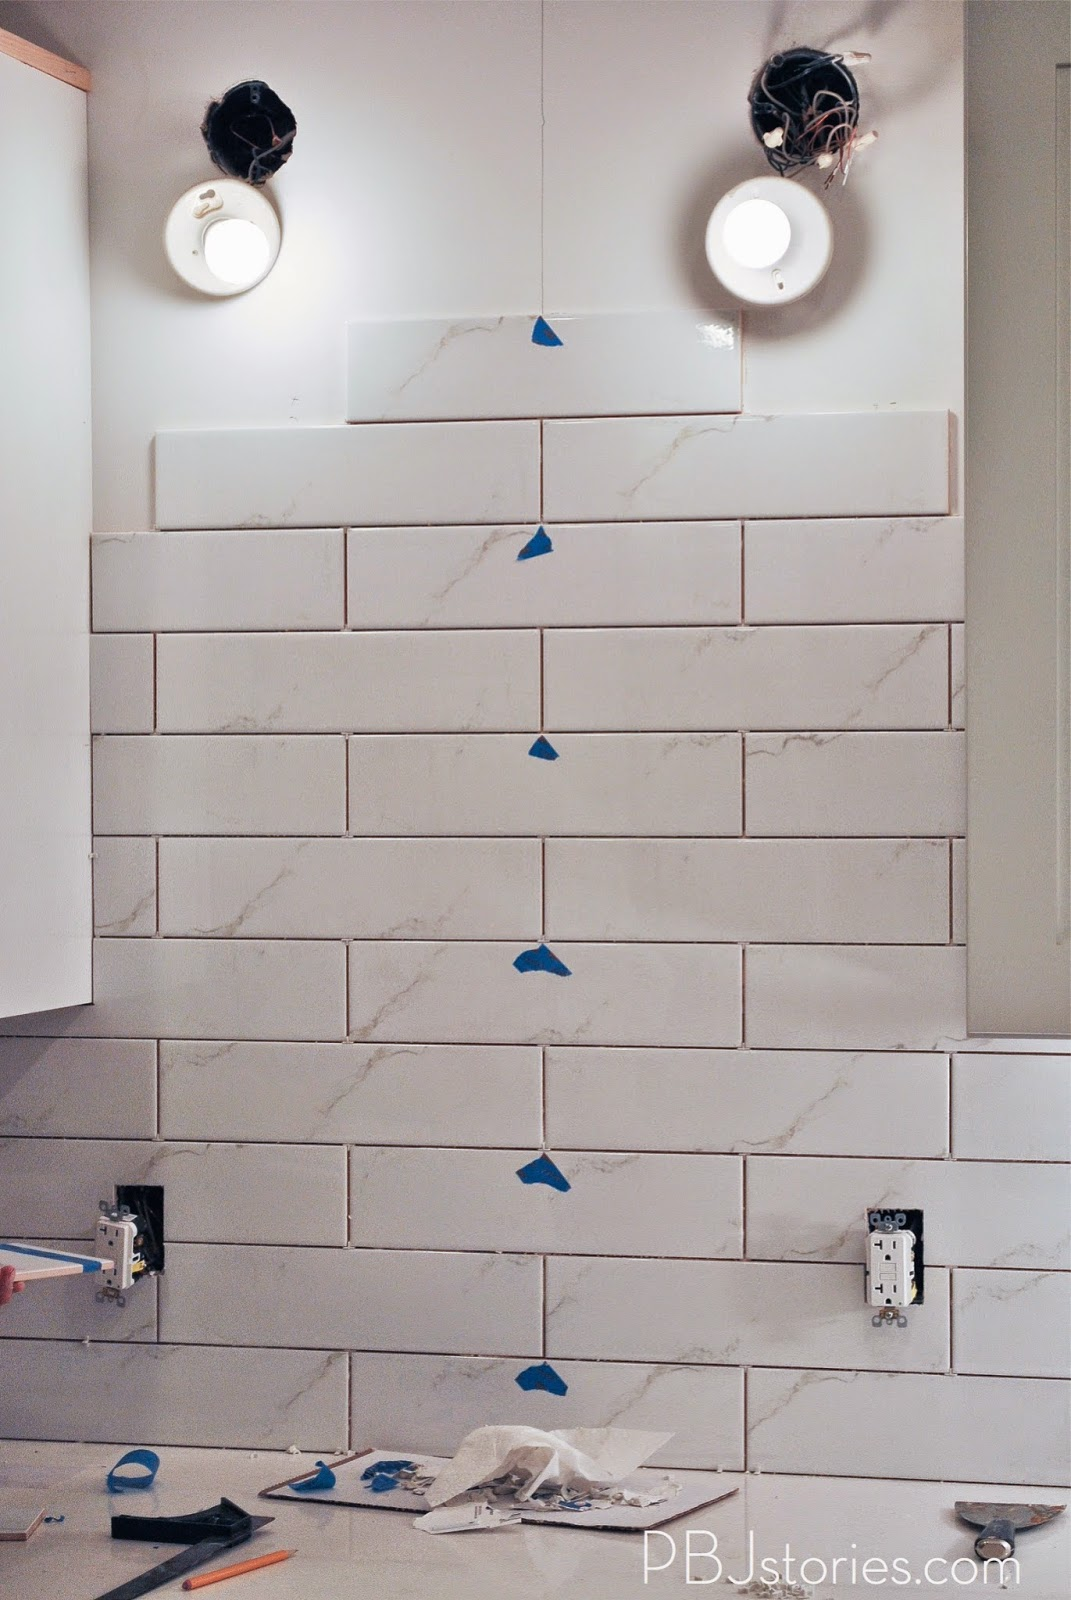 Similar To How We Cut The Outlet Tiles Had Out Areas For Pendant Lights It Was A Little More Difficult Since S Curved Area